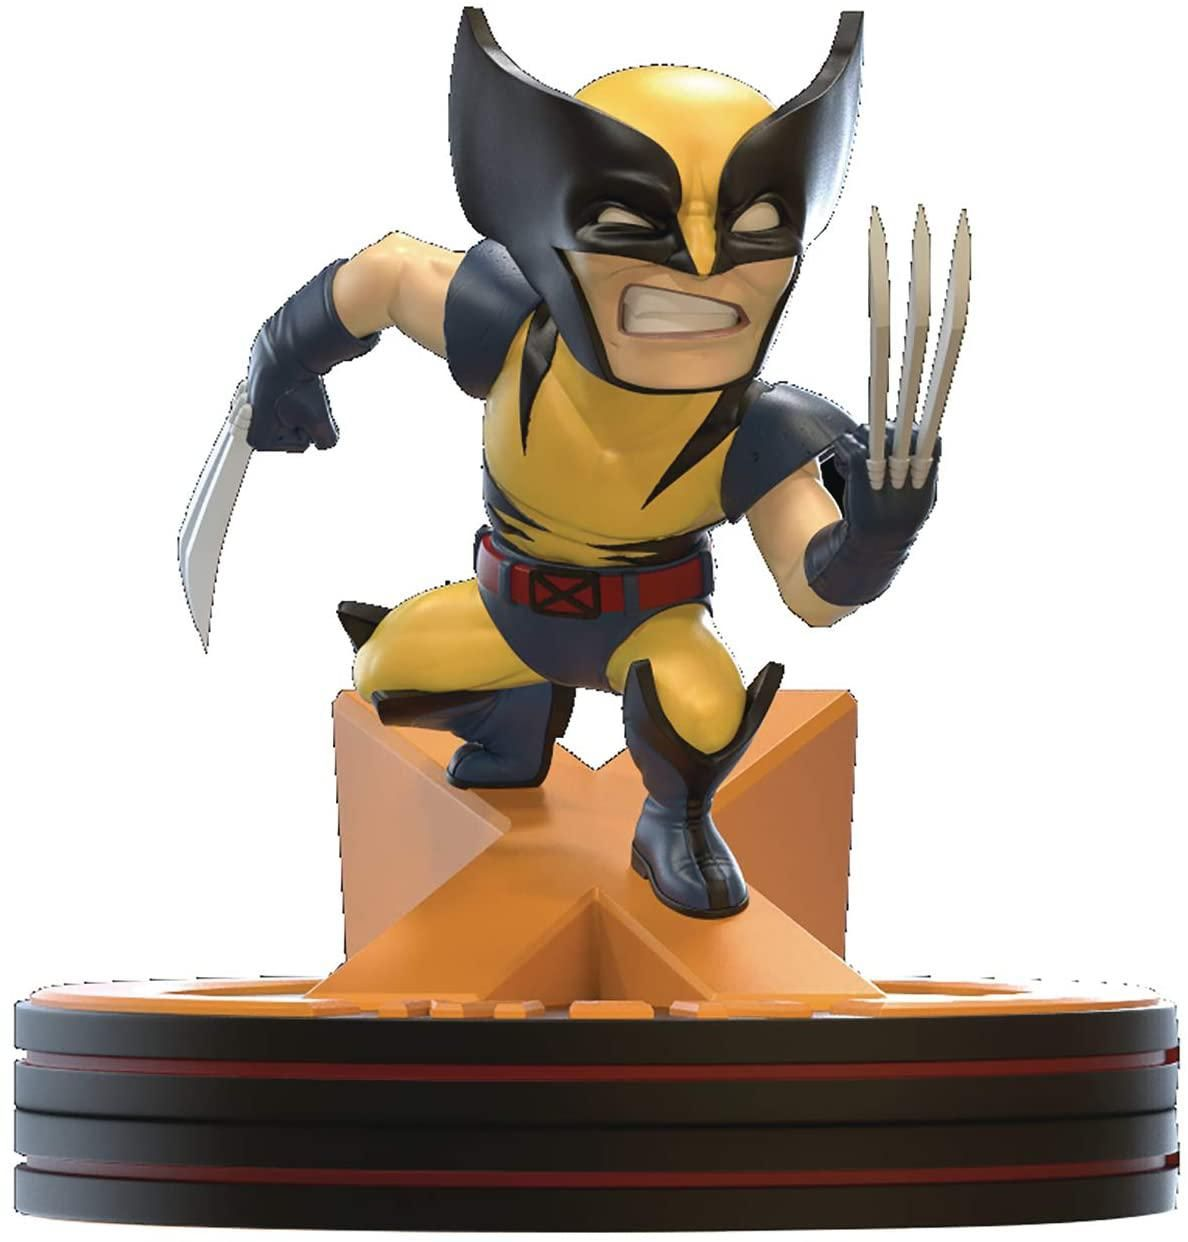 Marvel X-Men Wolverine 80th Anniversary Qfig Diorama